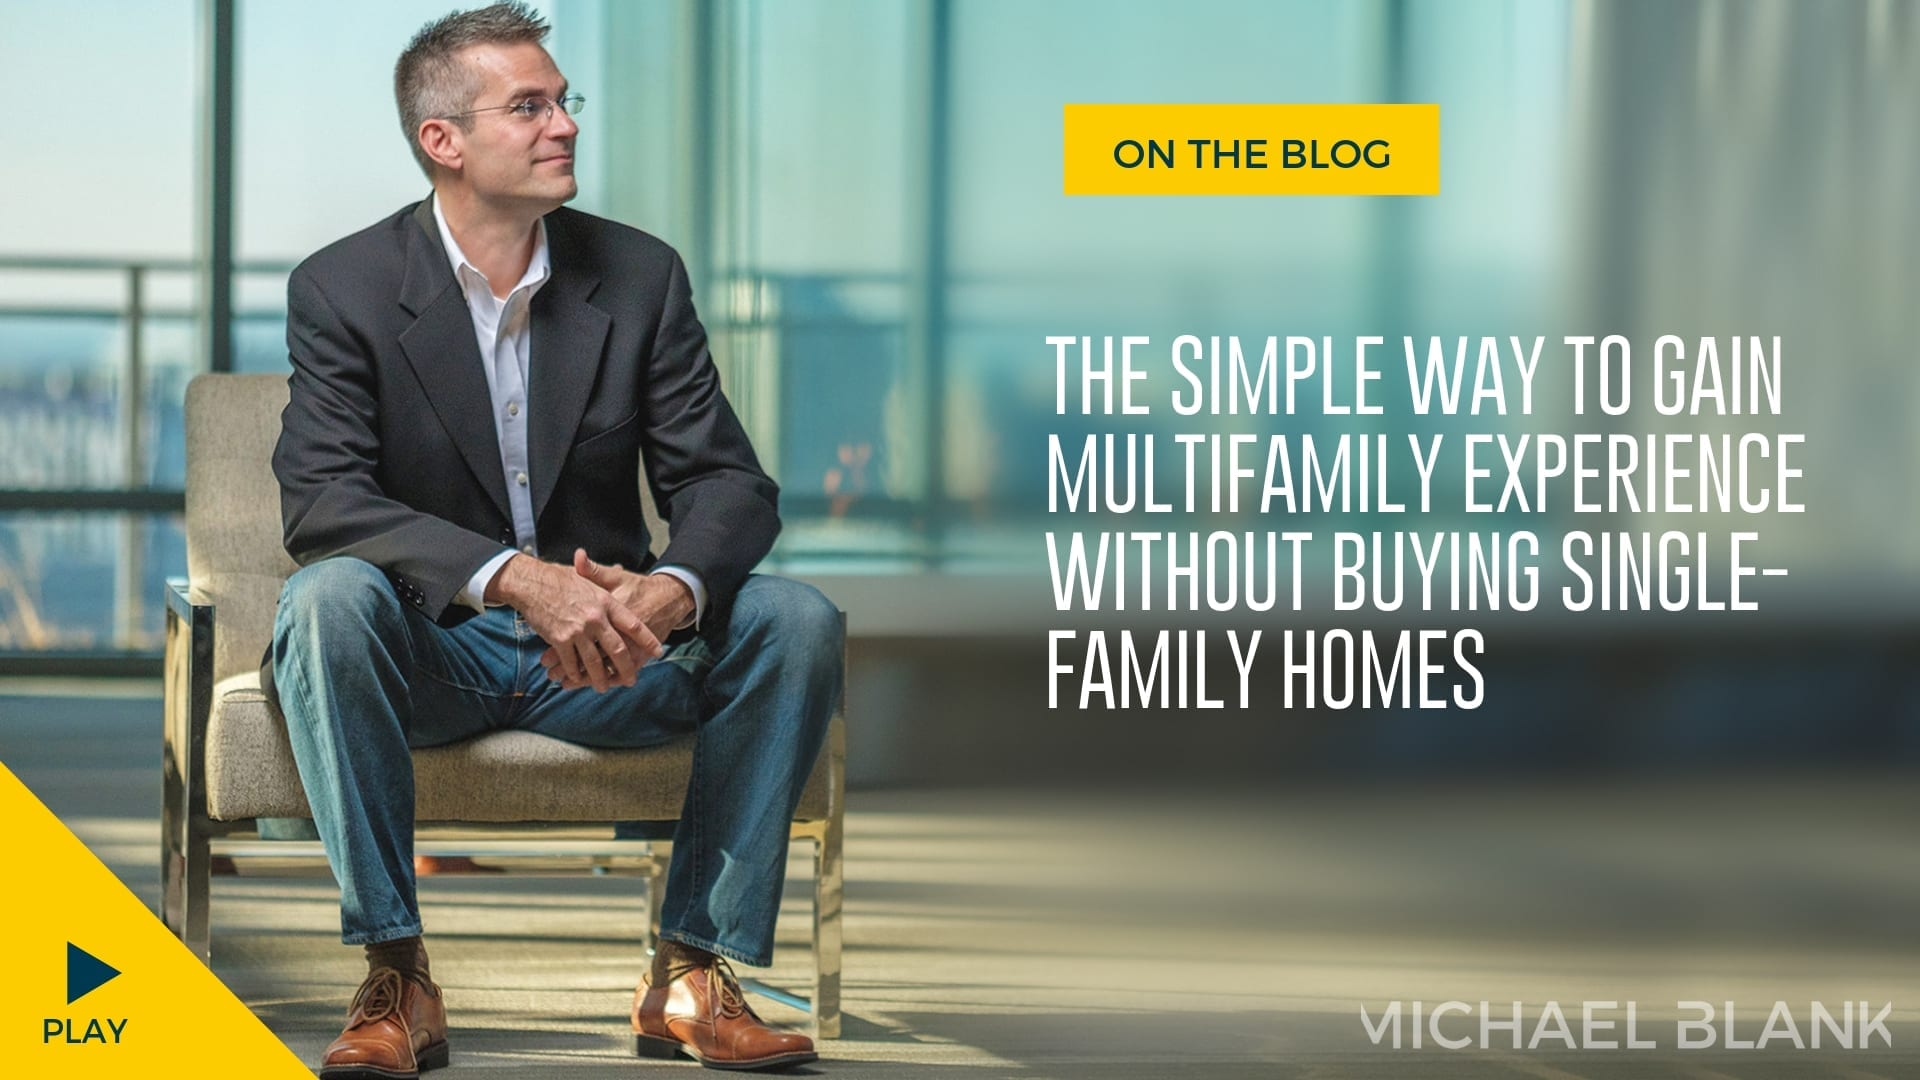 The Simple Way to Gain Experience For Multifamily Investing Without Buying Single Family Homes